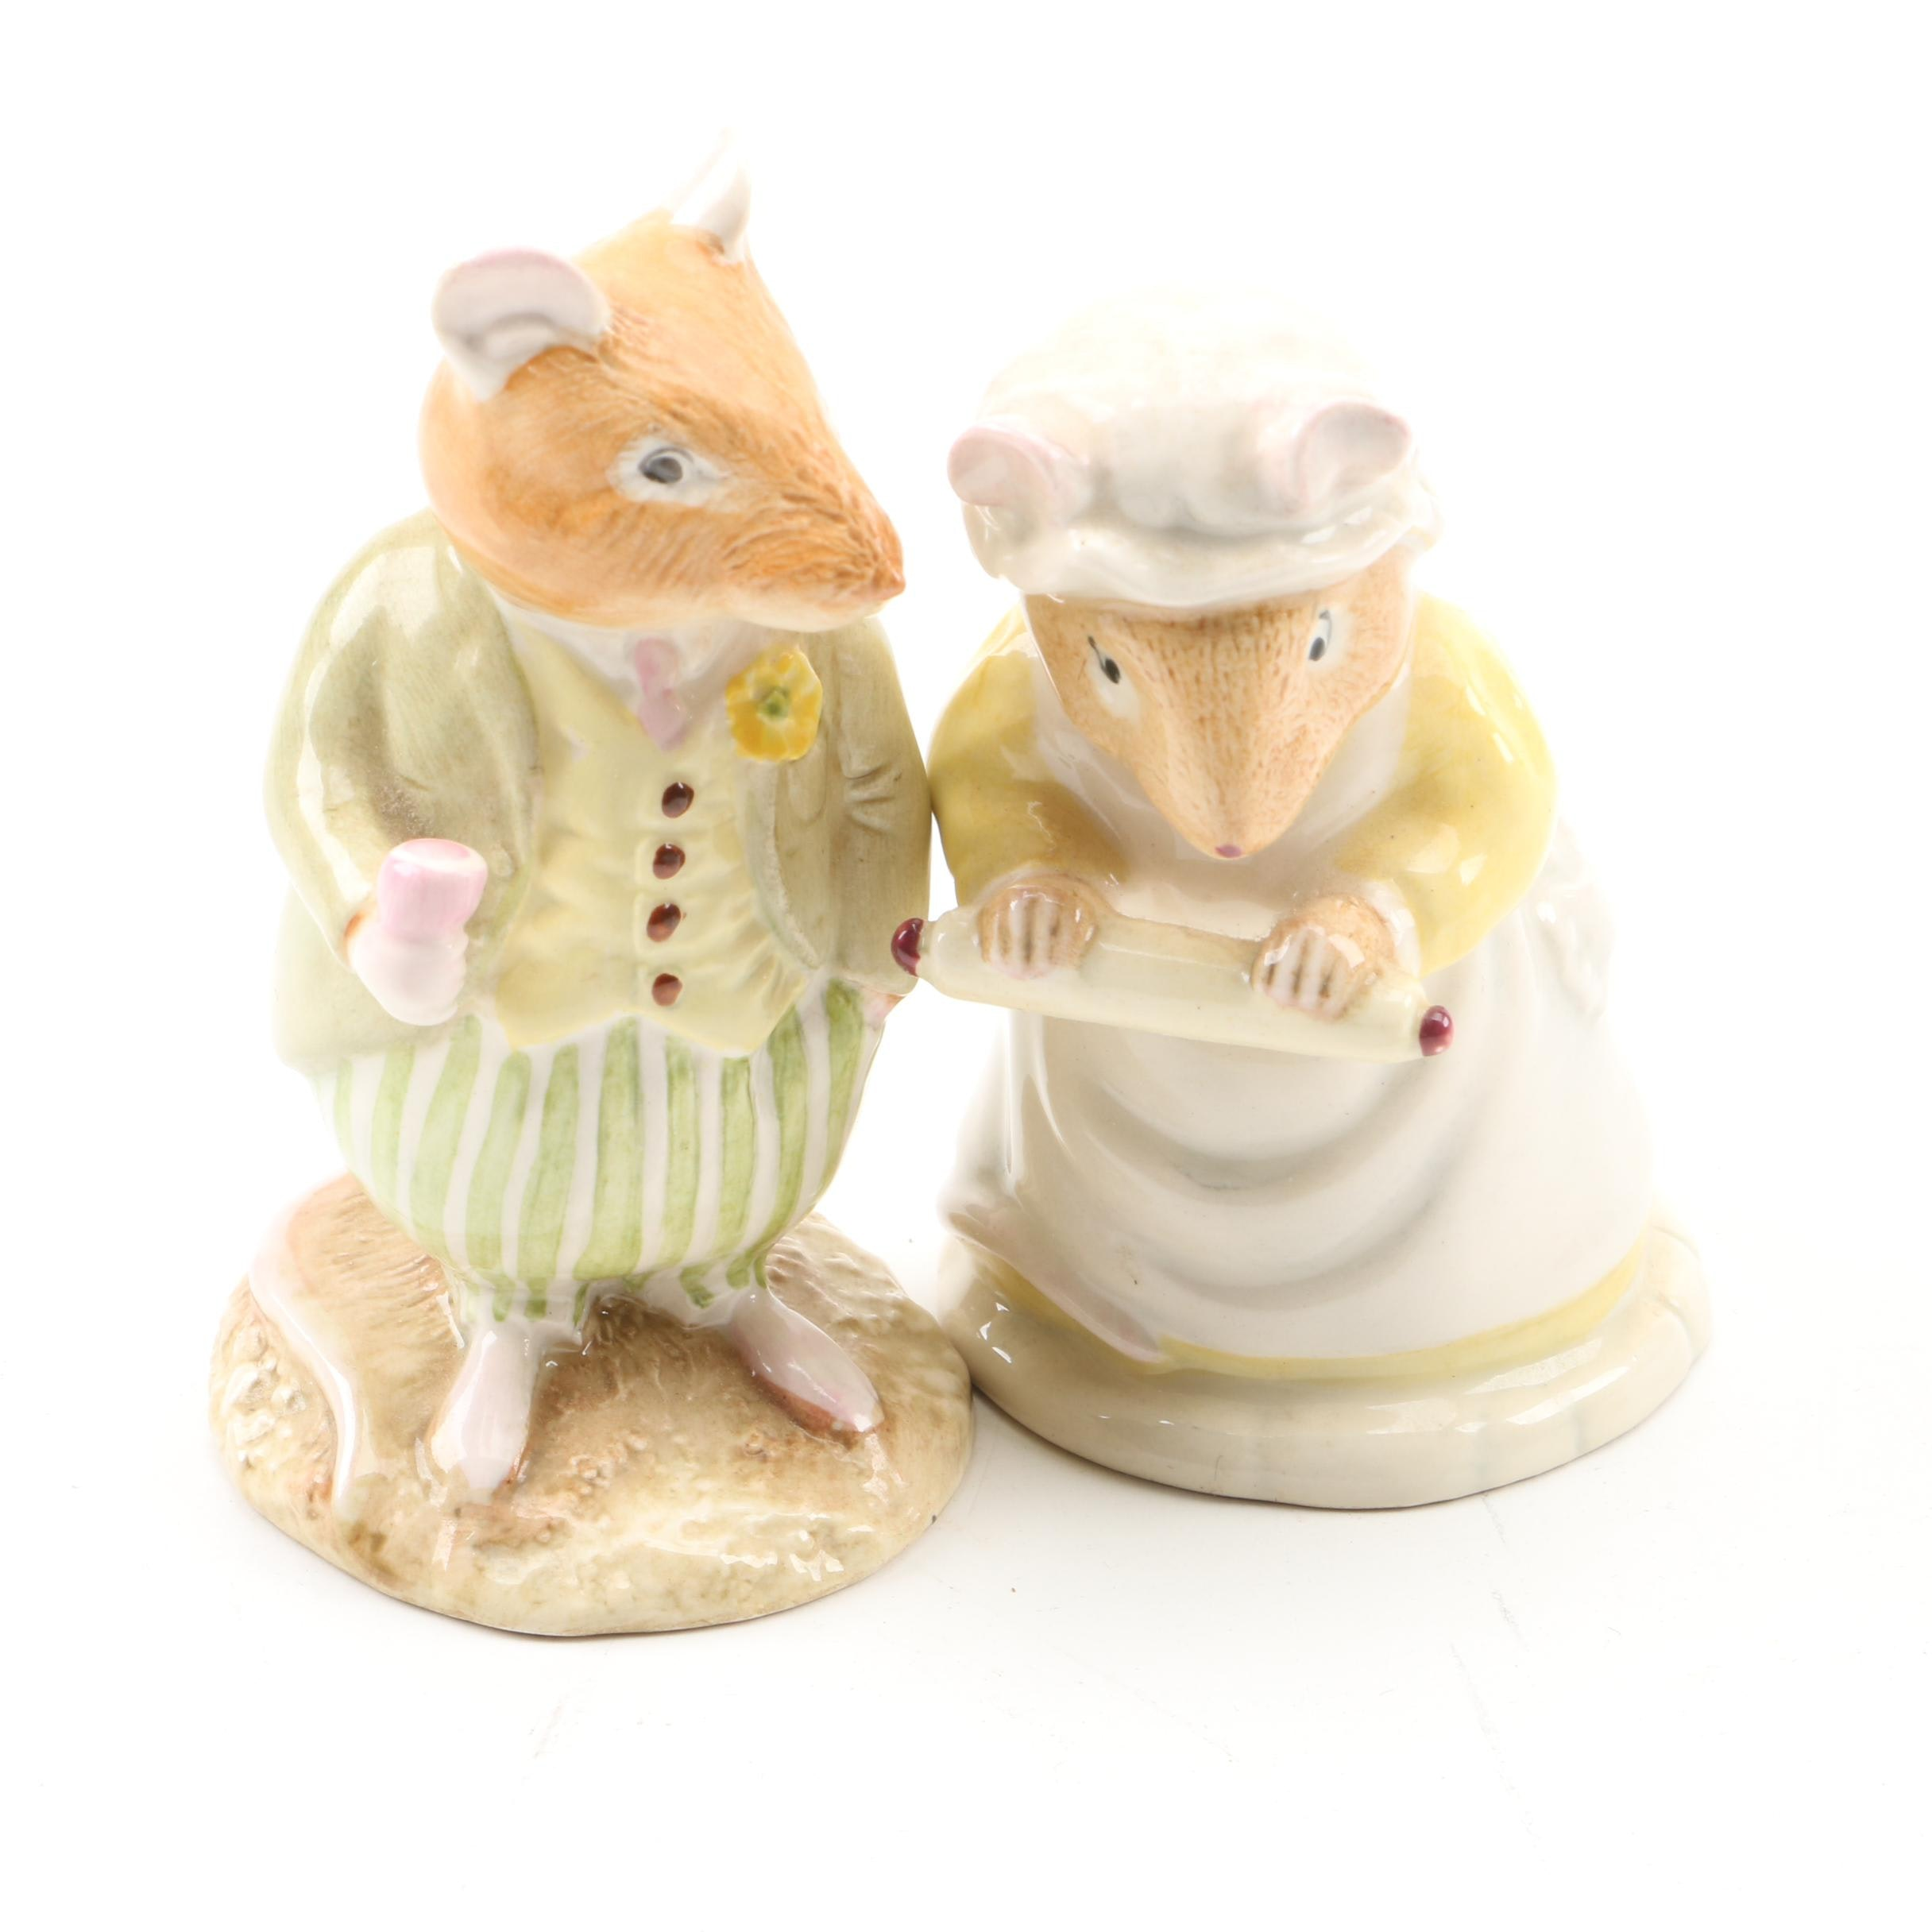 Royal Doulton Beatrix Potter Figurines, Including Mrs. Crustybread and Conker